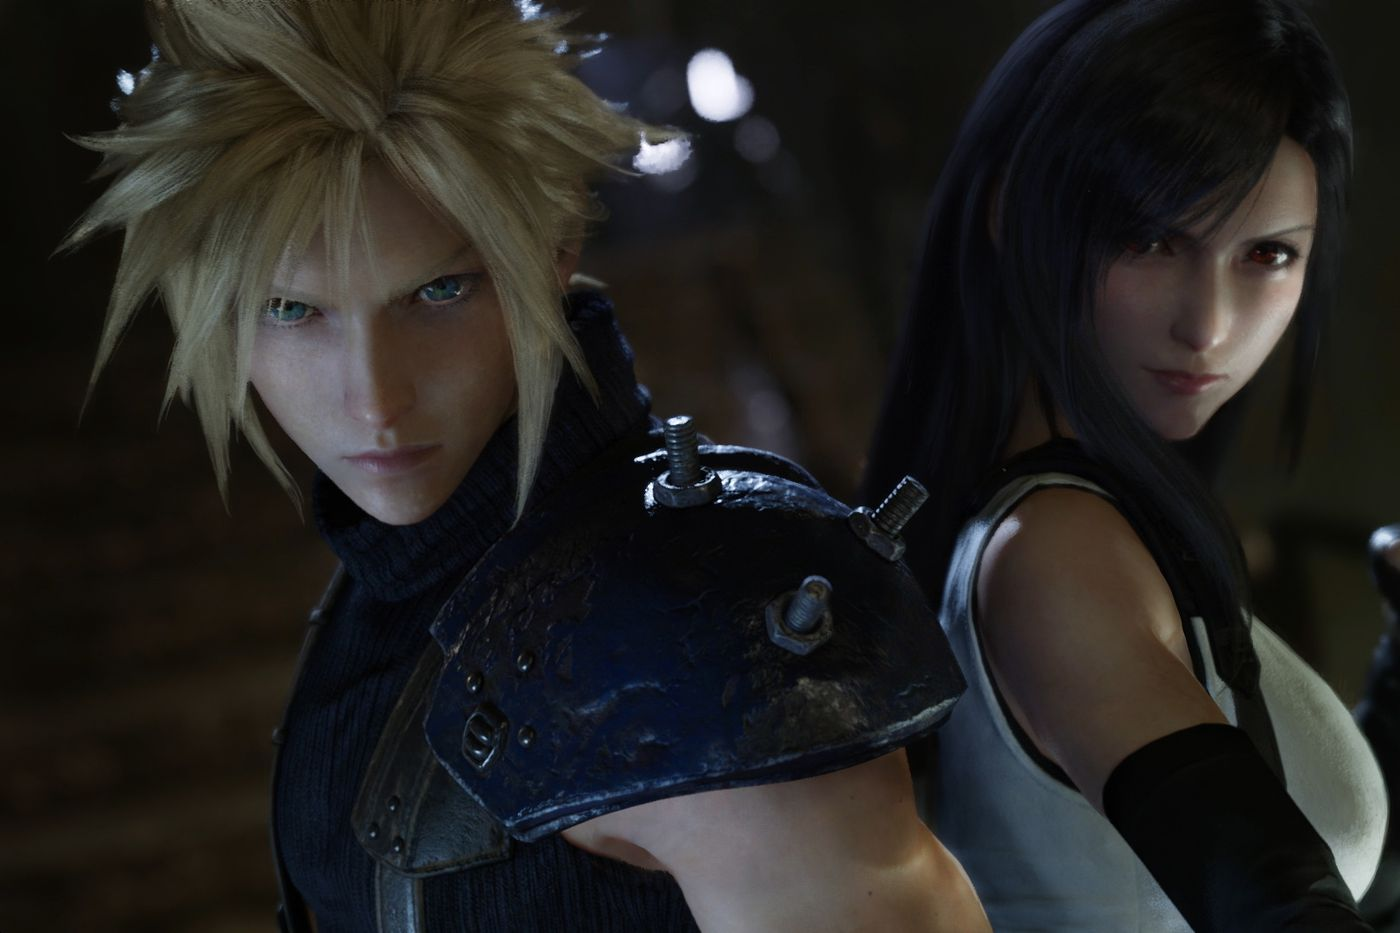 A closer look at Final Fantasy 7 Remake's ultra-realistic characters